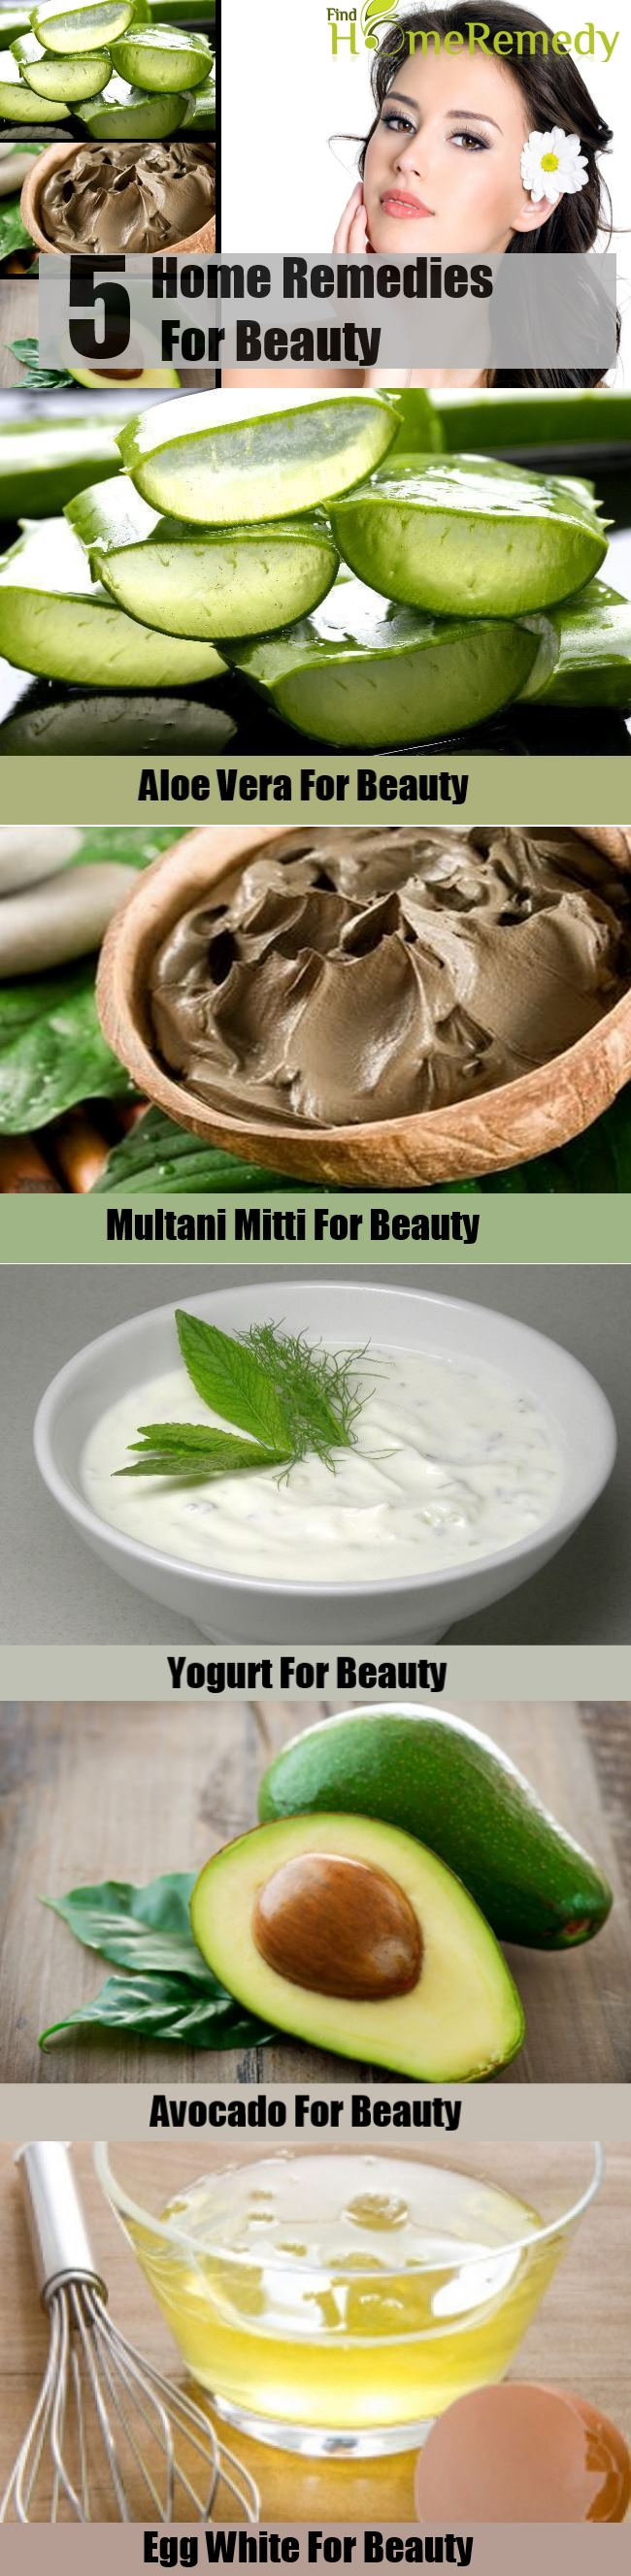 5 Home Remedies For Beauty